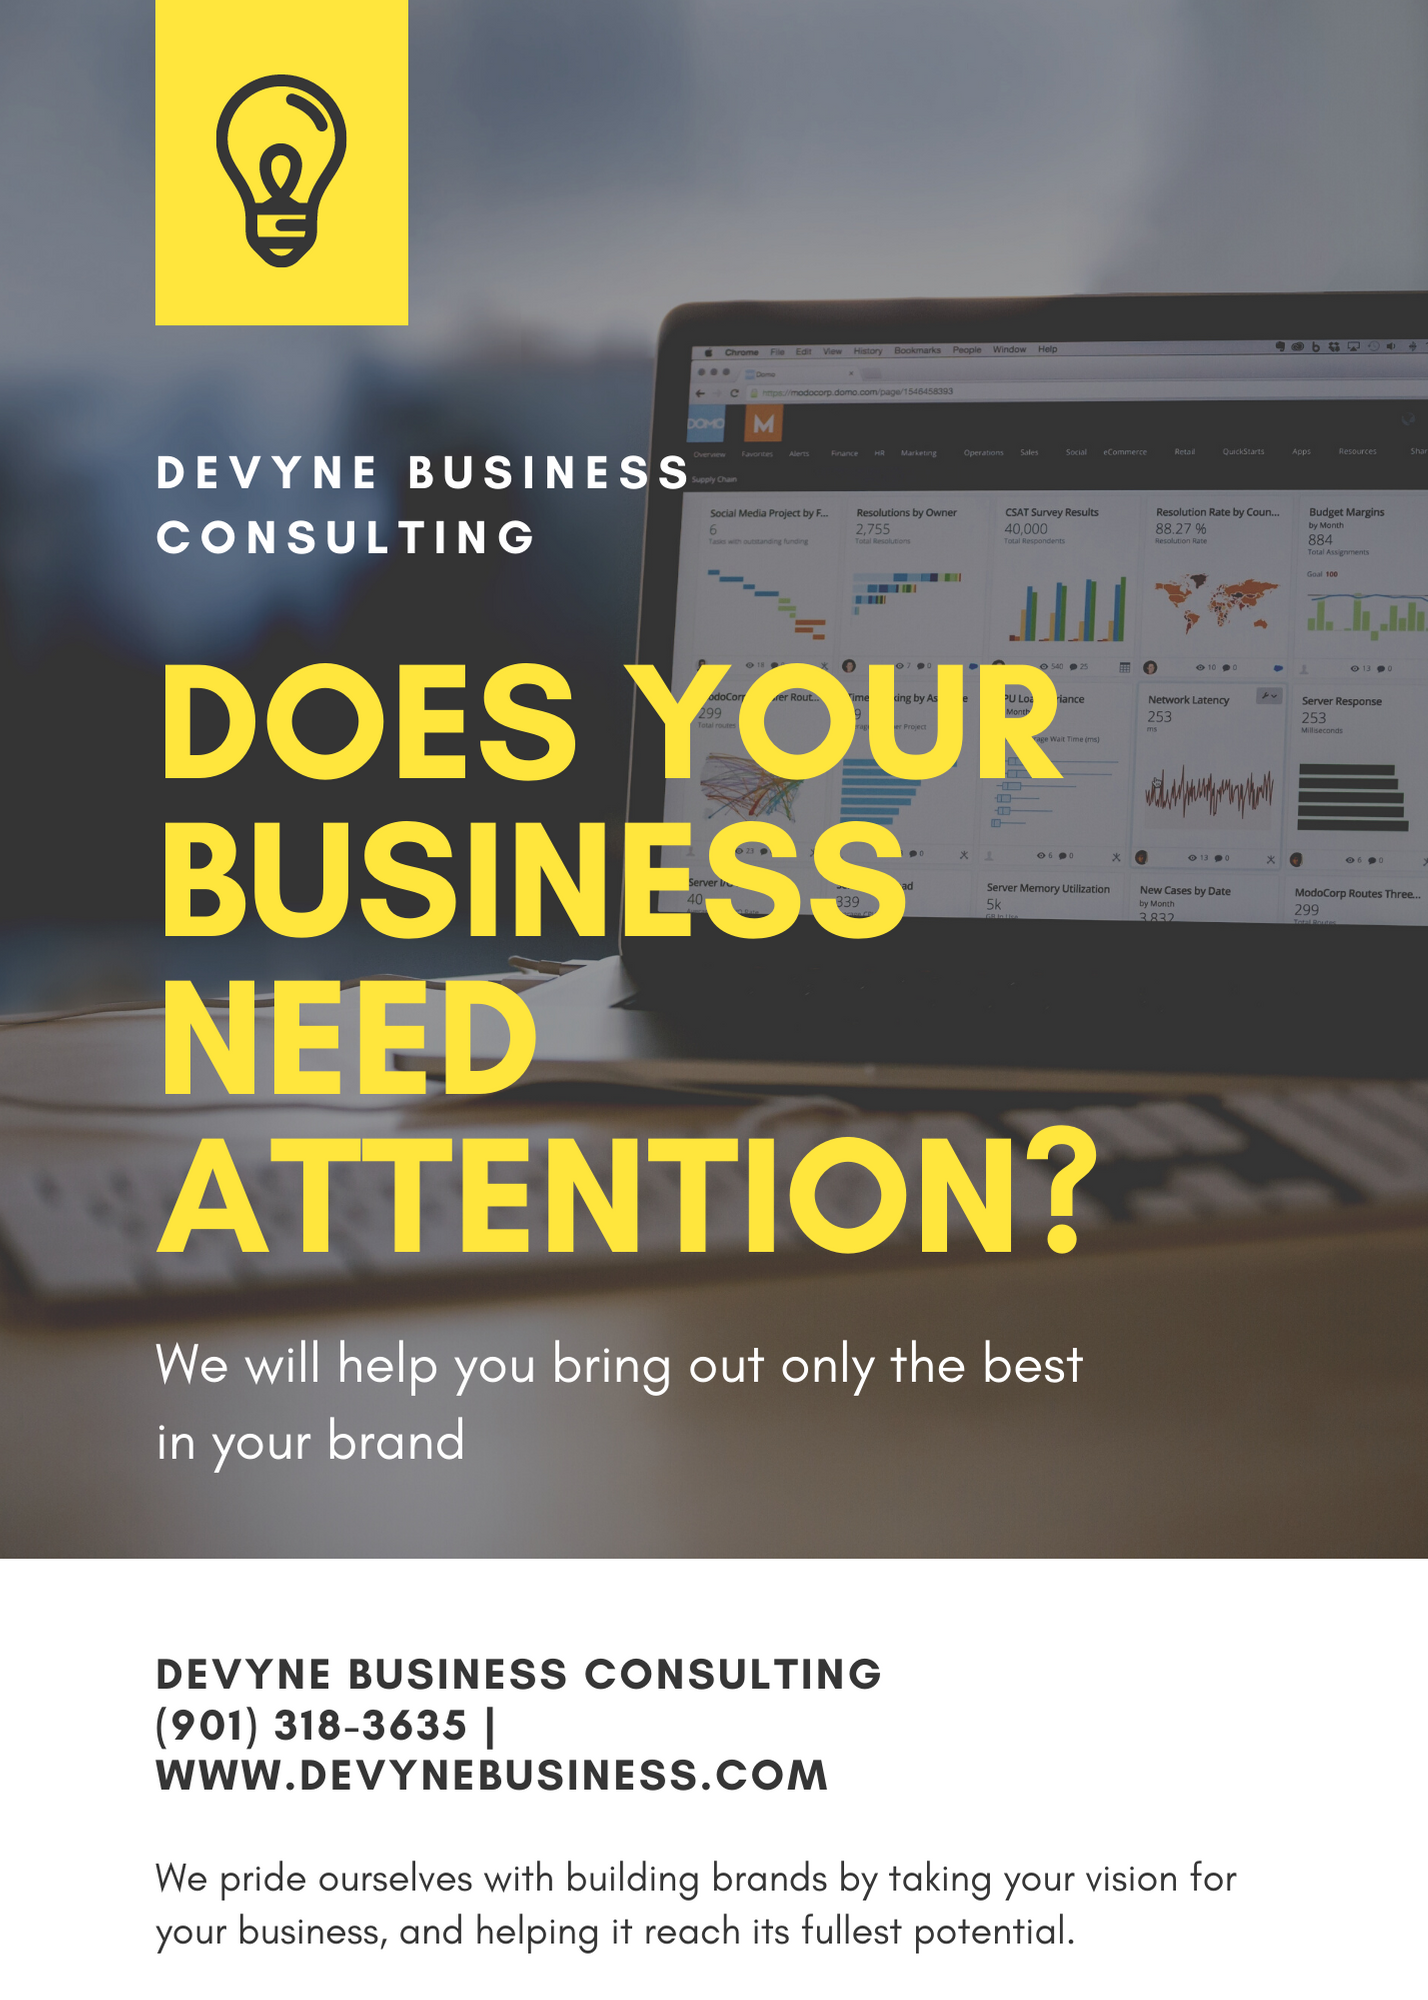 Does Your Business Need Attention